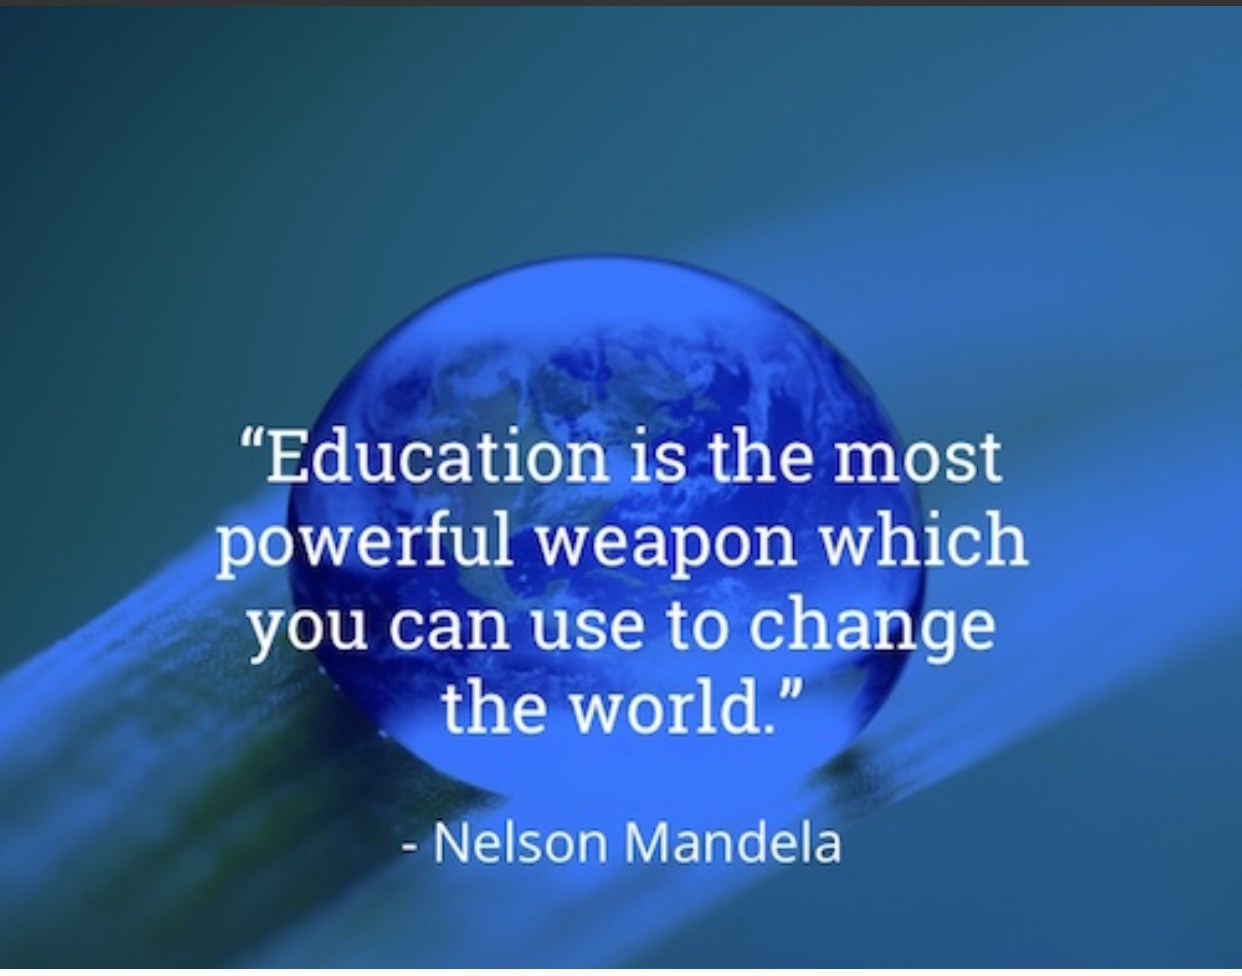 Education is the most powerful weapon which can use to change the world